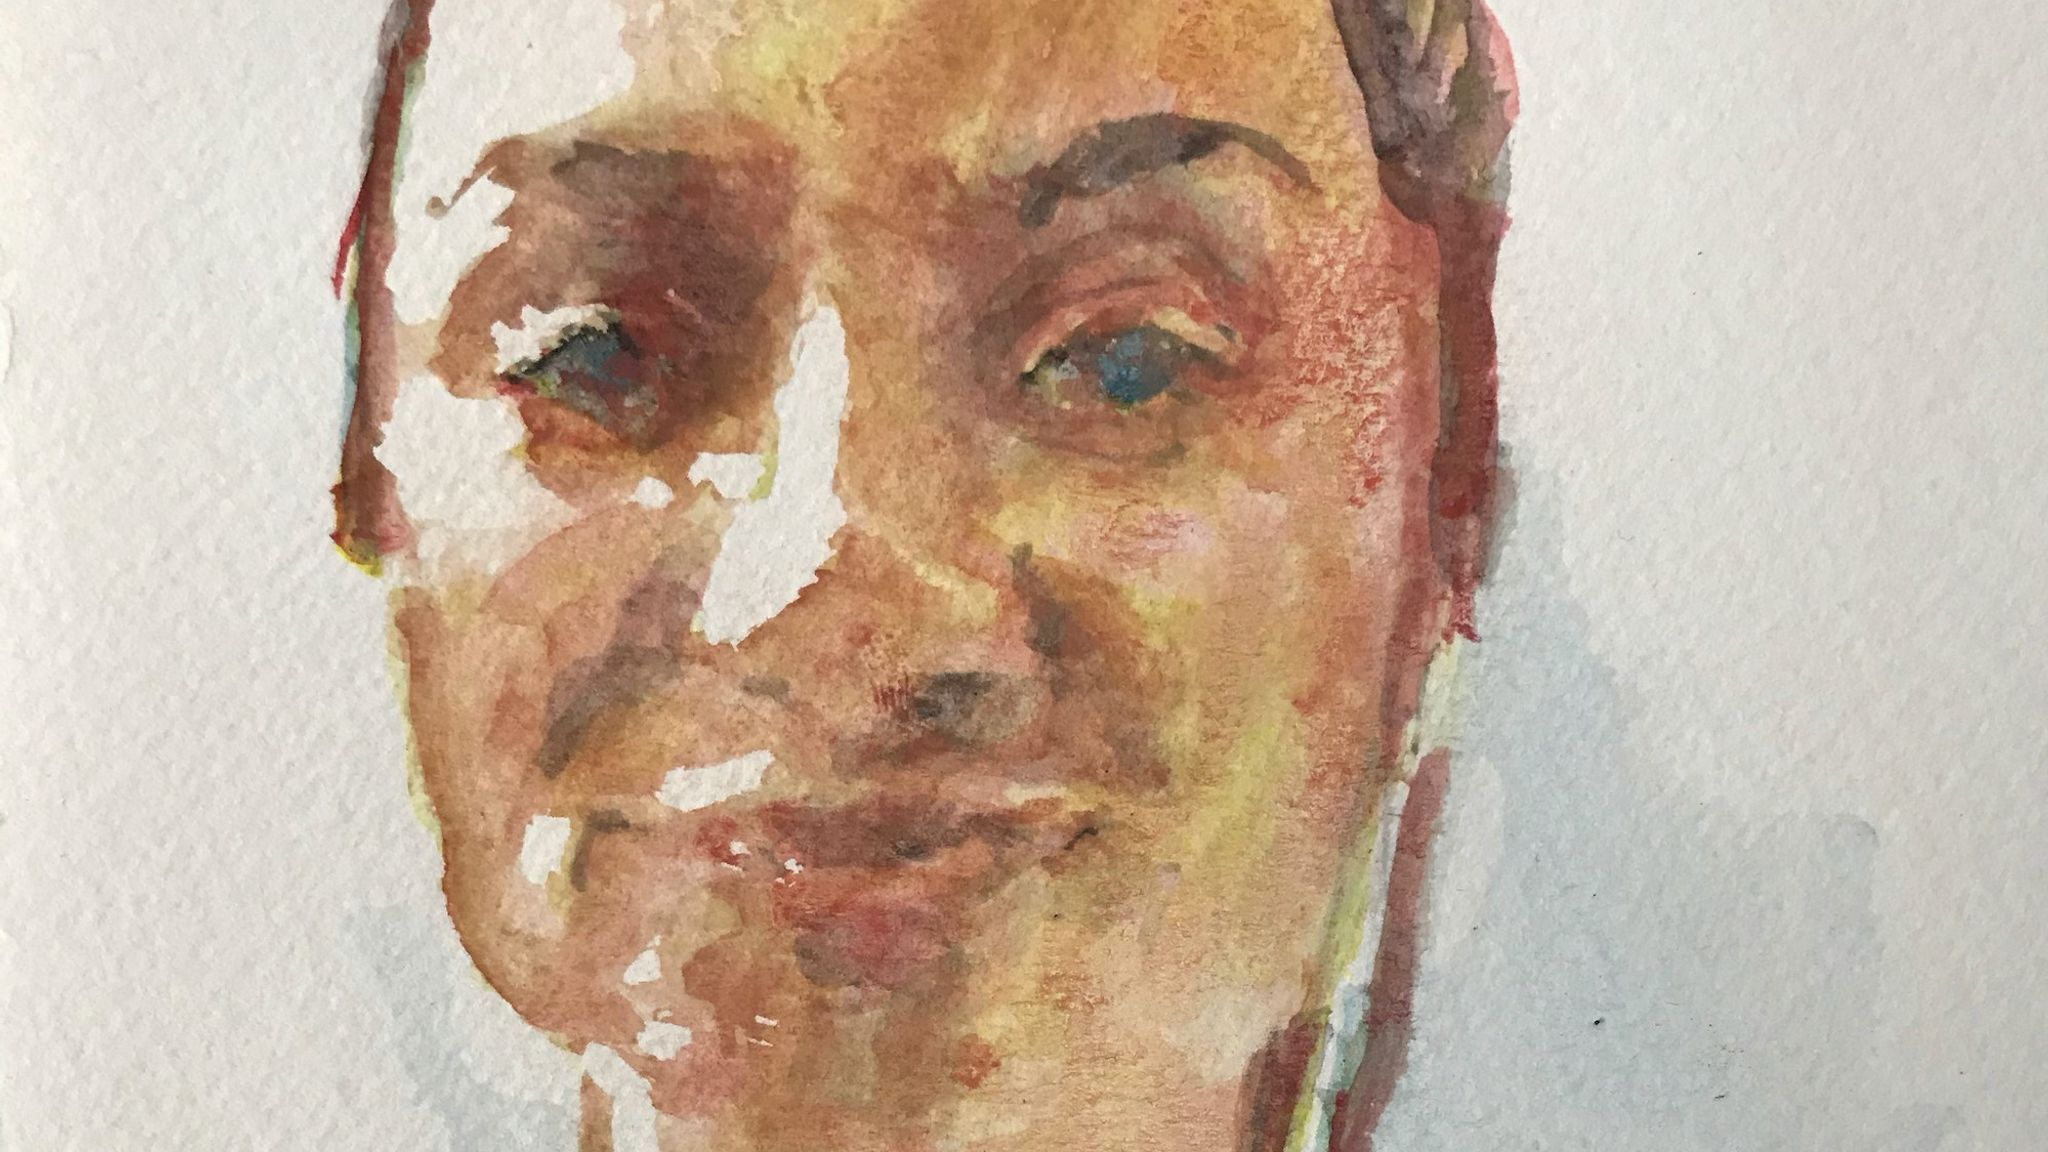 Scarlett Brannigan by James Crowther, for the NHS Heroes virtual art exhibition